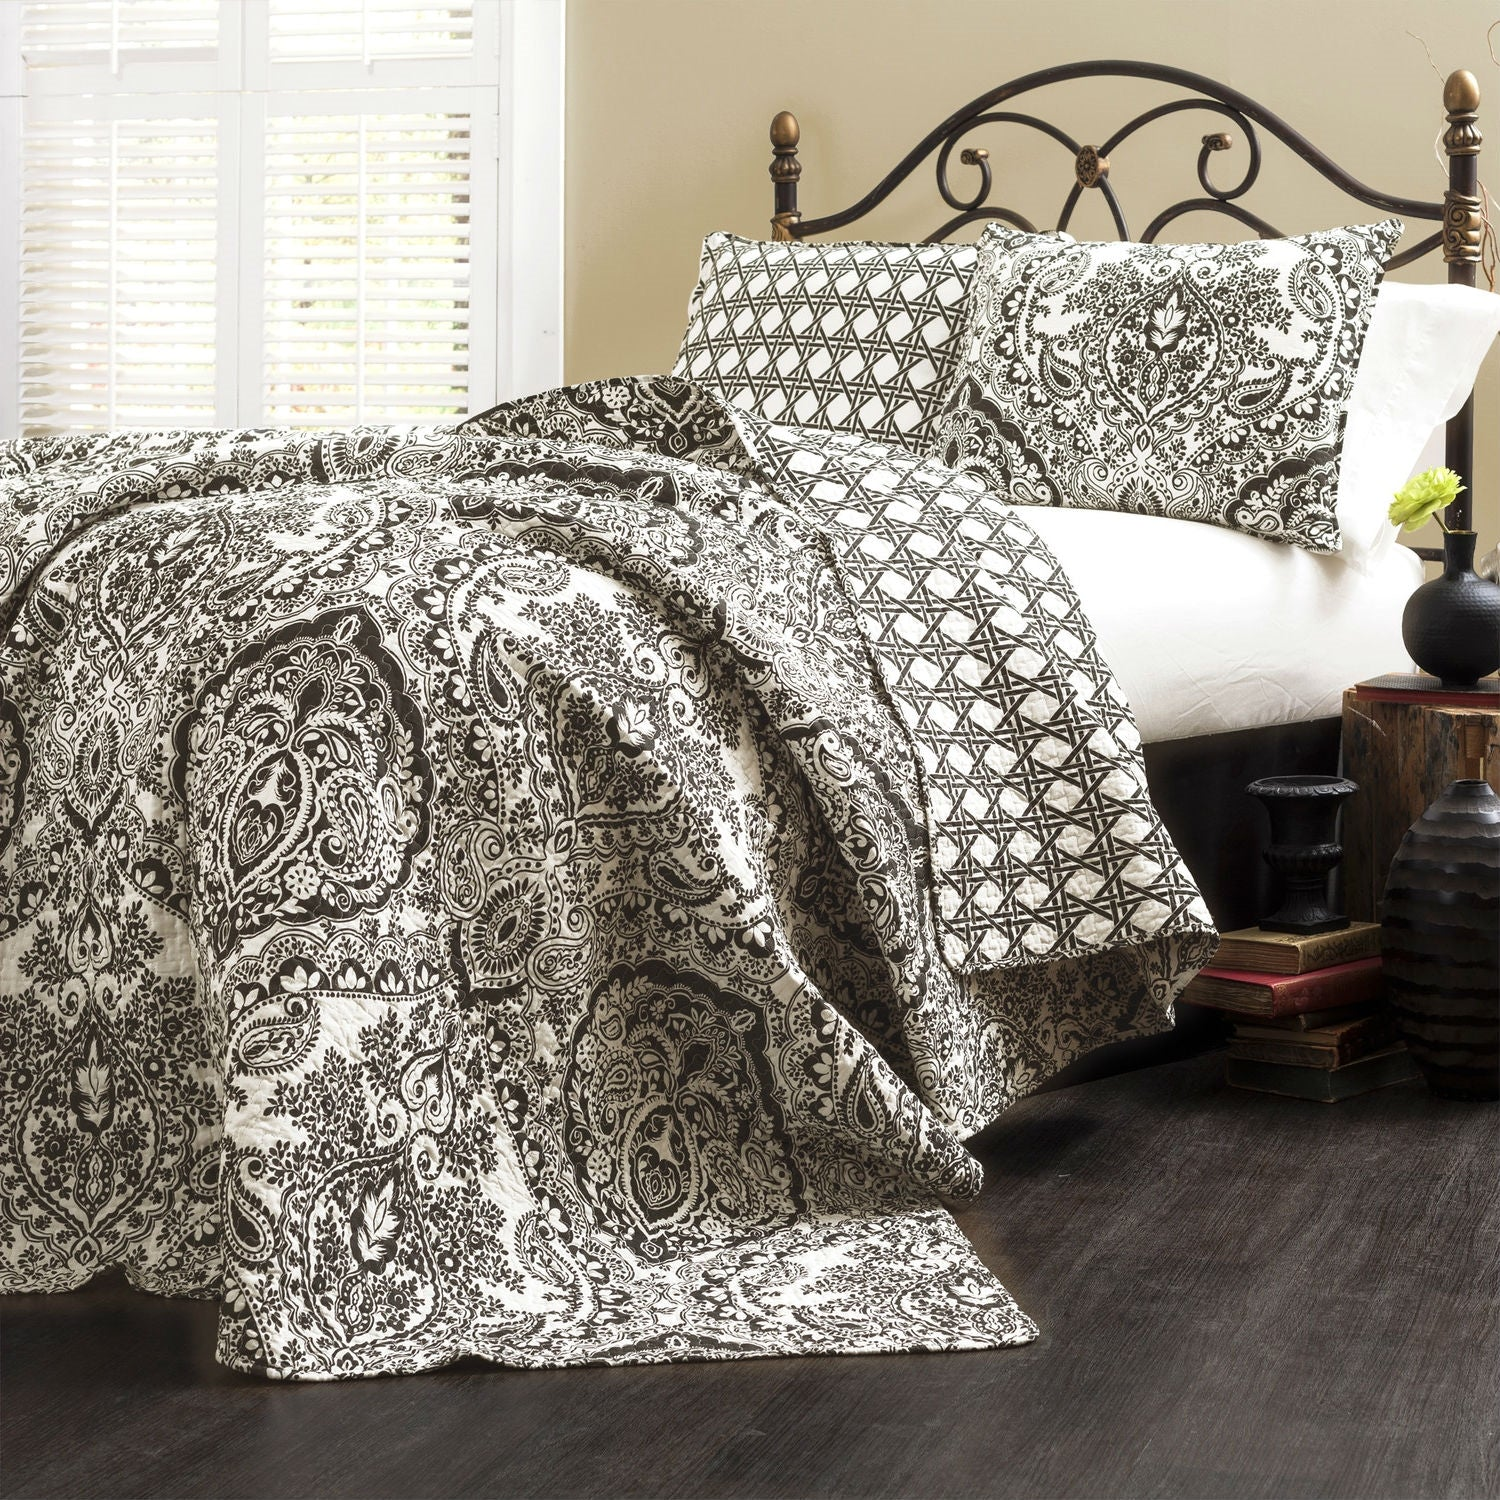 Queen size 3-Piece Quilt Set 100-Percent Cotton in Black White Damask